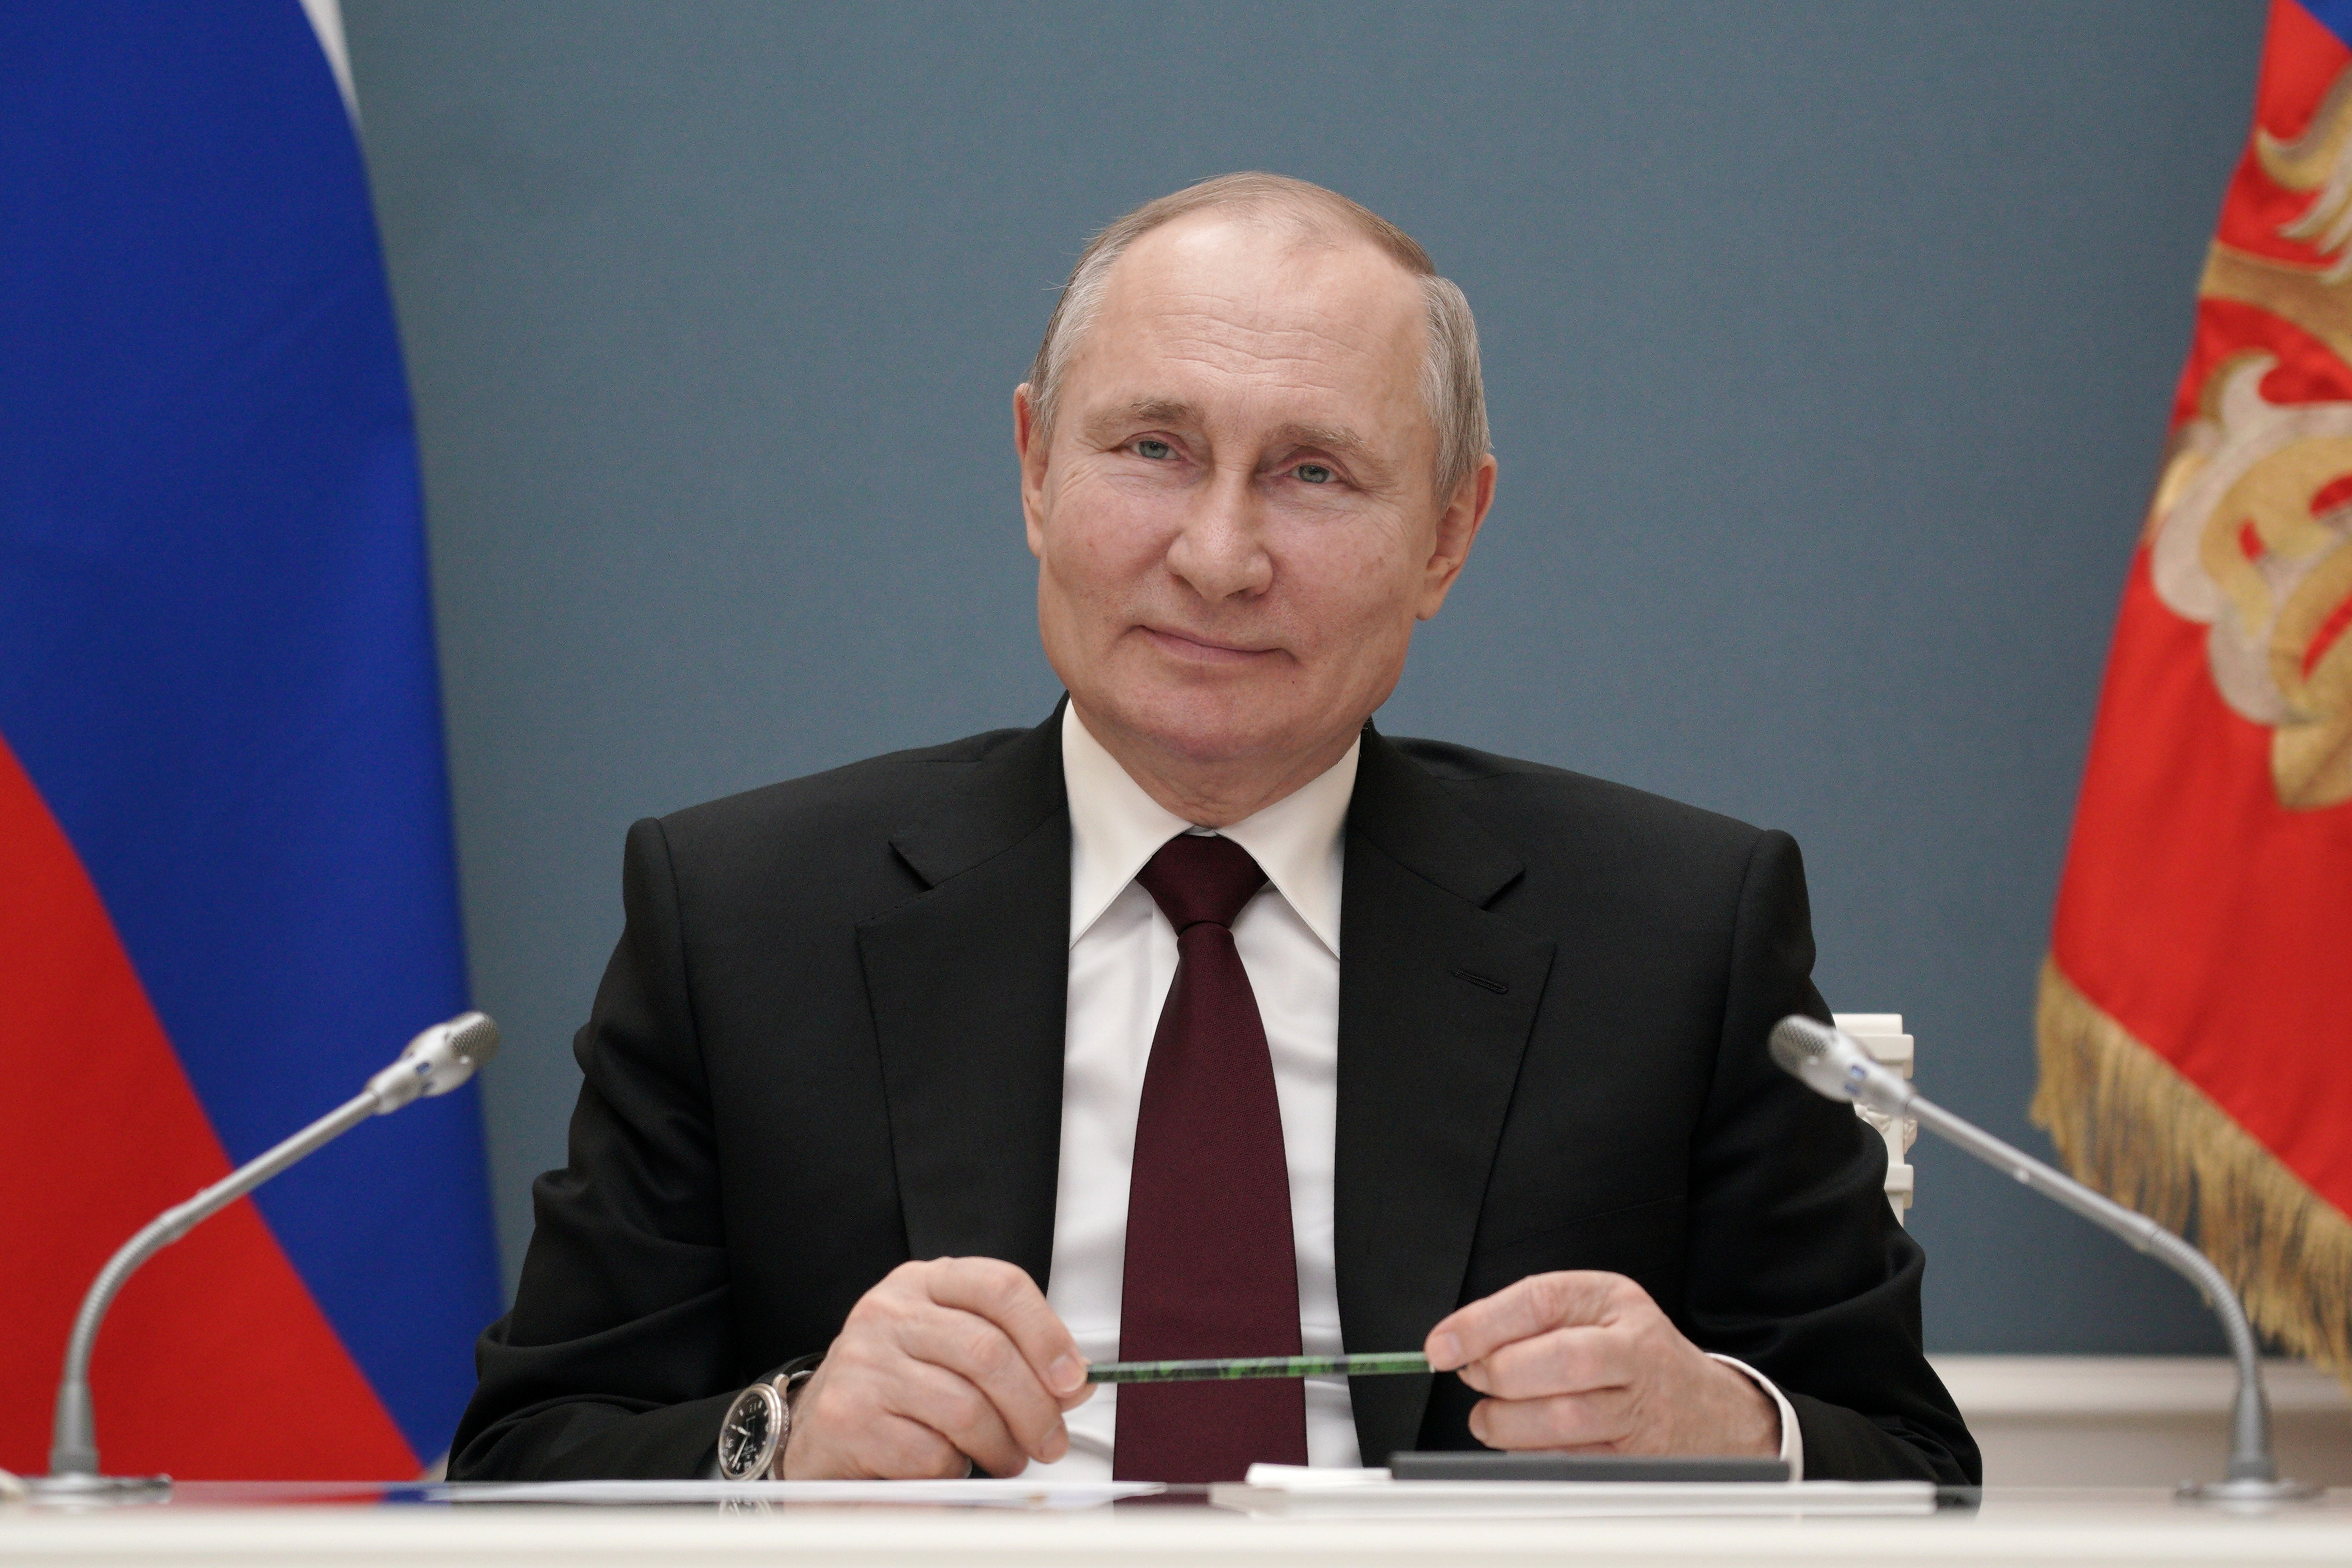 Russian President Vladimir Putin takes part in a ceremony launching the Talas Gold Mining Plant at Kyrgyzstan's Jerooy gold deposit via a video link in Moscow, Russia March 17, 2021. Sputnik/Alexei Druzhinin/Kremlin via REUTERS